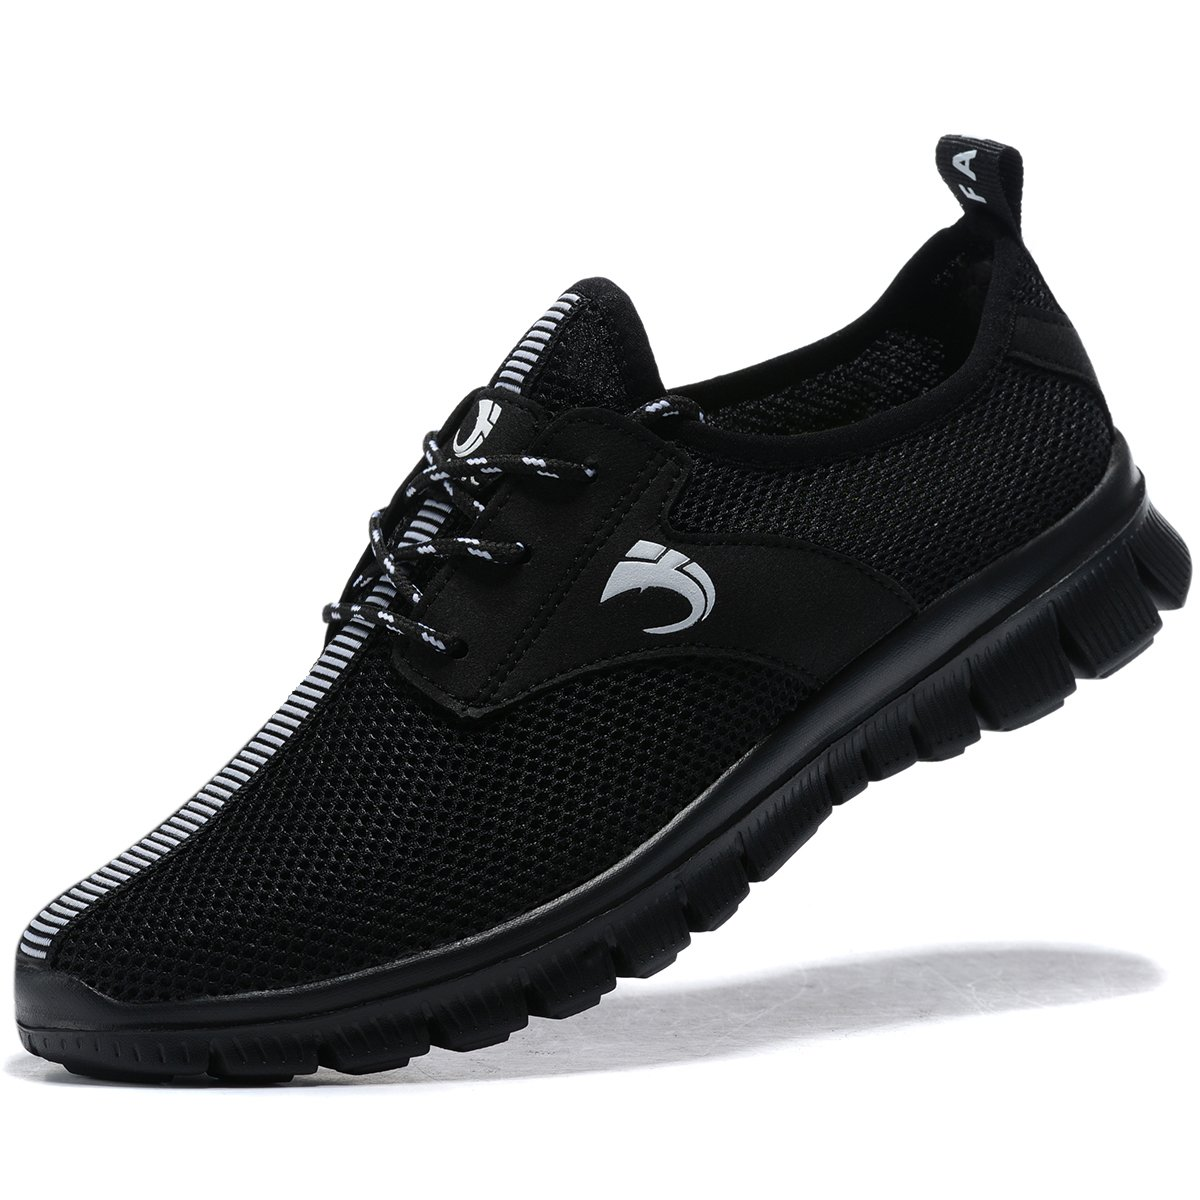 FANIC Men's Walking Shoes Workout Shoes Full Mesh Running Shoes Lightweight Comfortable Fitness Breathable Casual Sneaker (11US/45EU,Men, All Black)¡